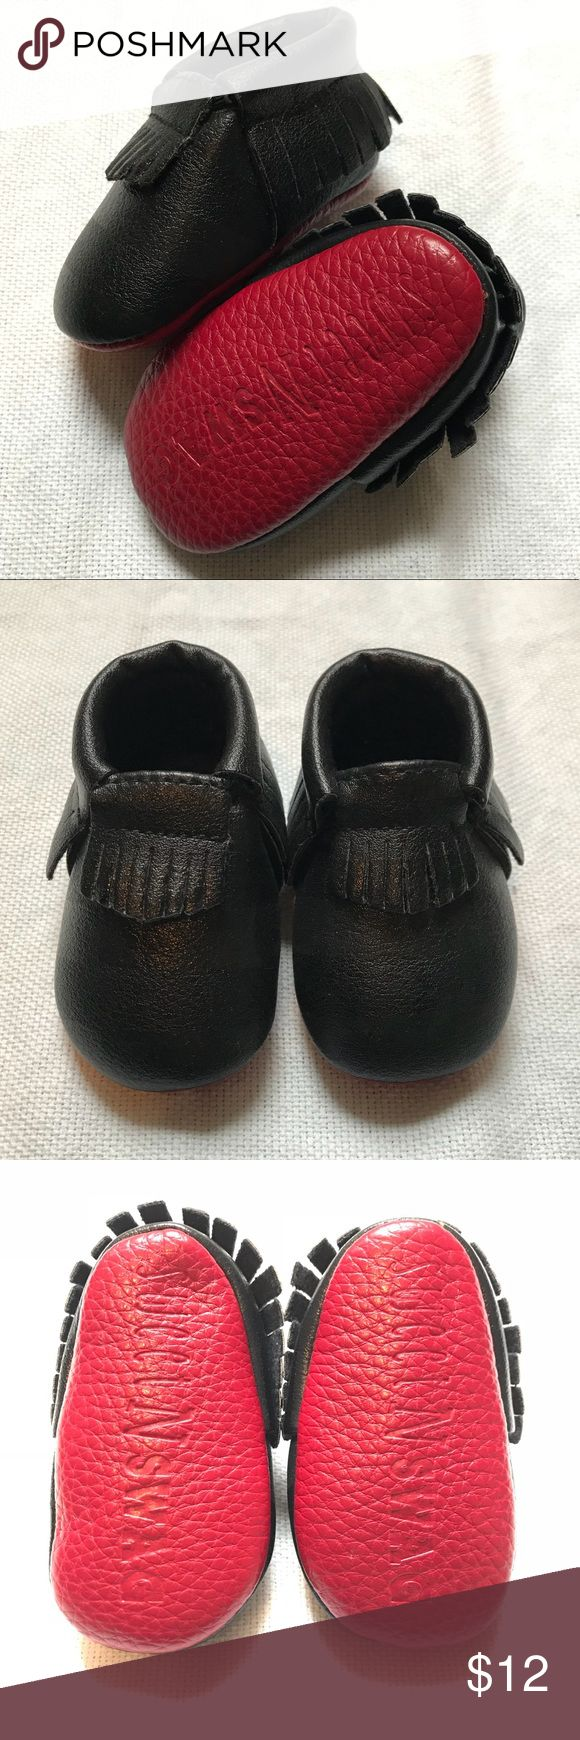 Newborn Baby Moccasins Newborn baby black moccasins with red bottoms.  Size 0 Shoes Baby & Walker